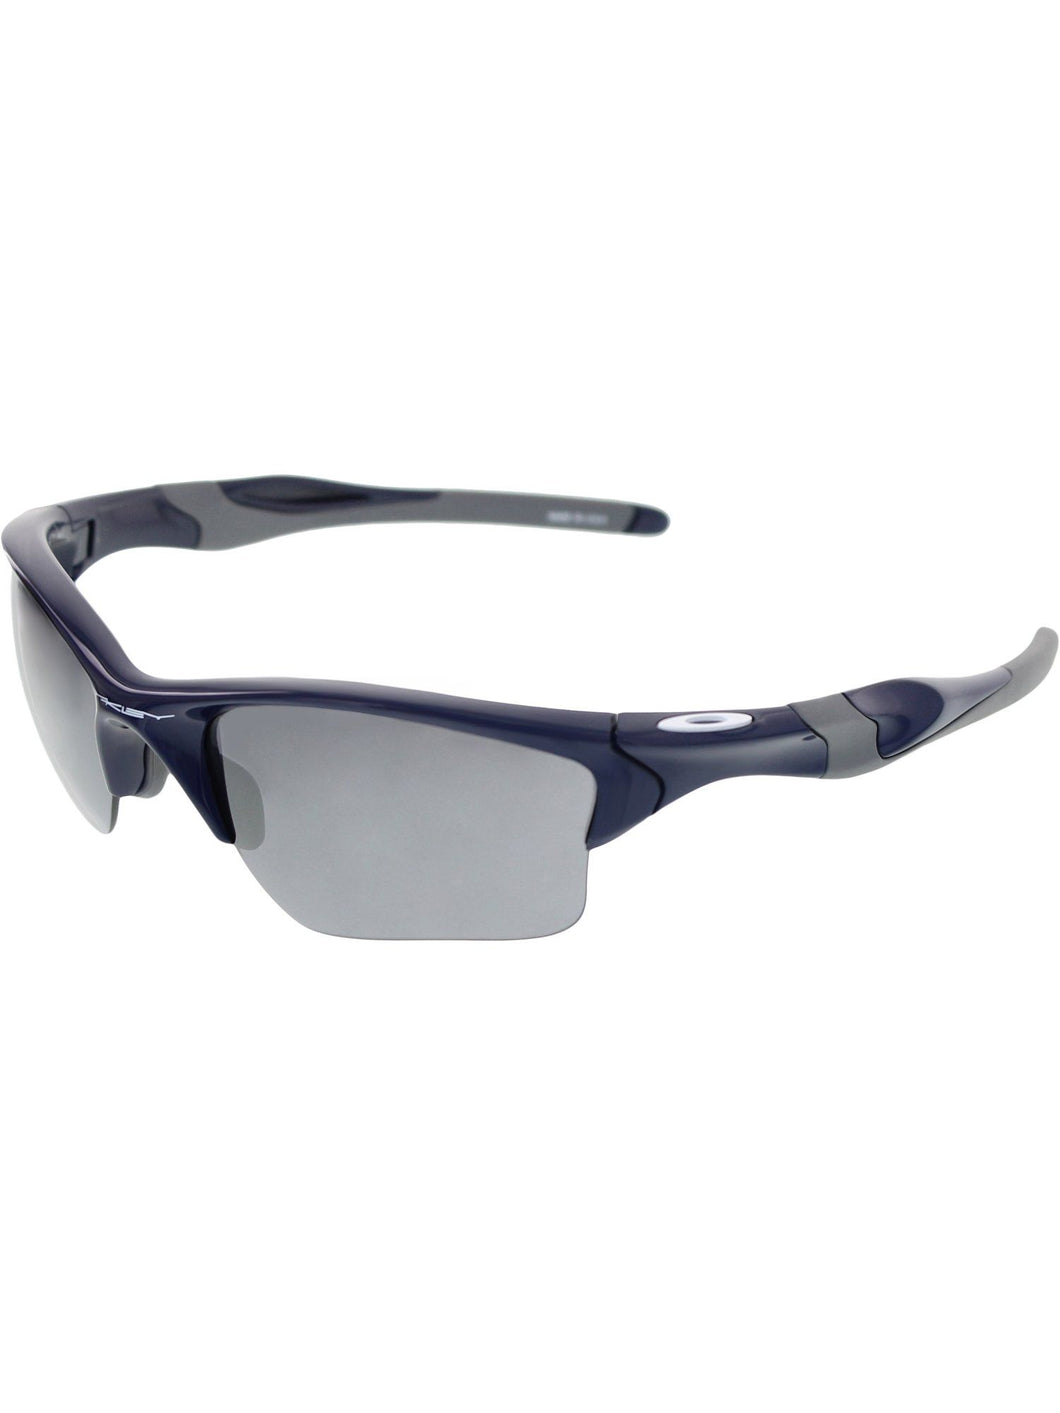 Oakley Sunglasses Mens OO9154-24 Half Jacket 2.0 XL Polished Navy - Watchbatteries